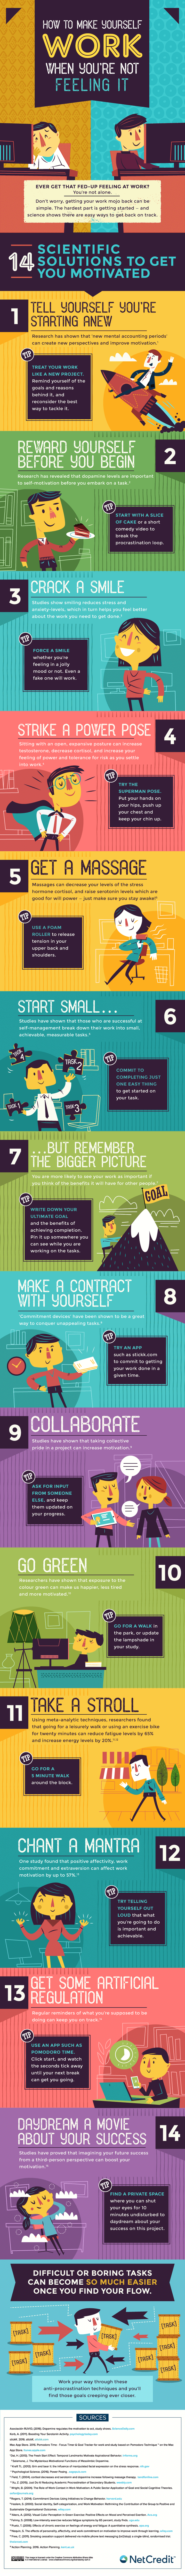 How to Make Yourself Work When You're Not Feeling It Infographic